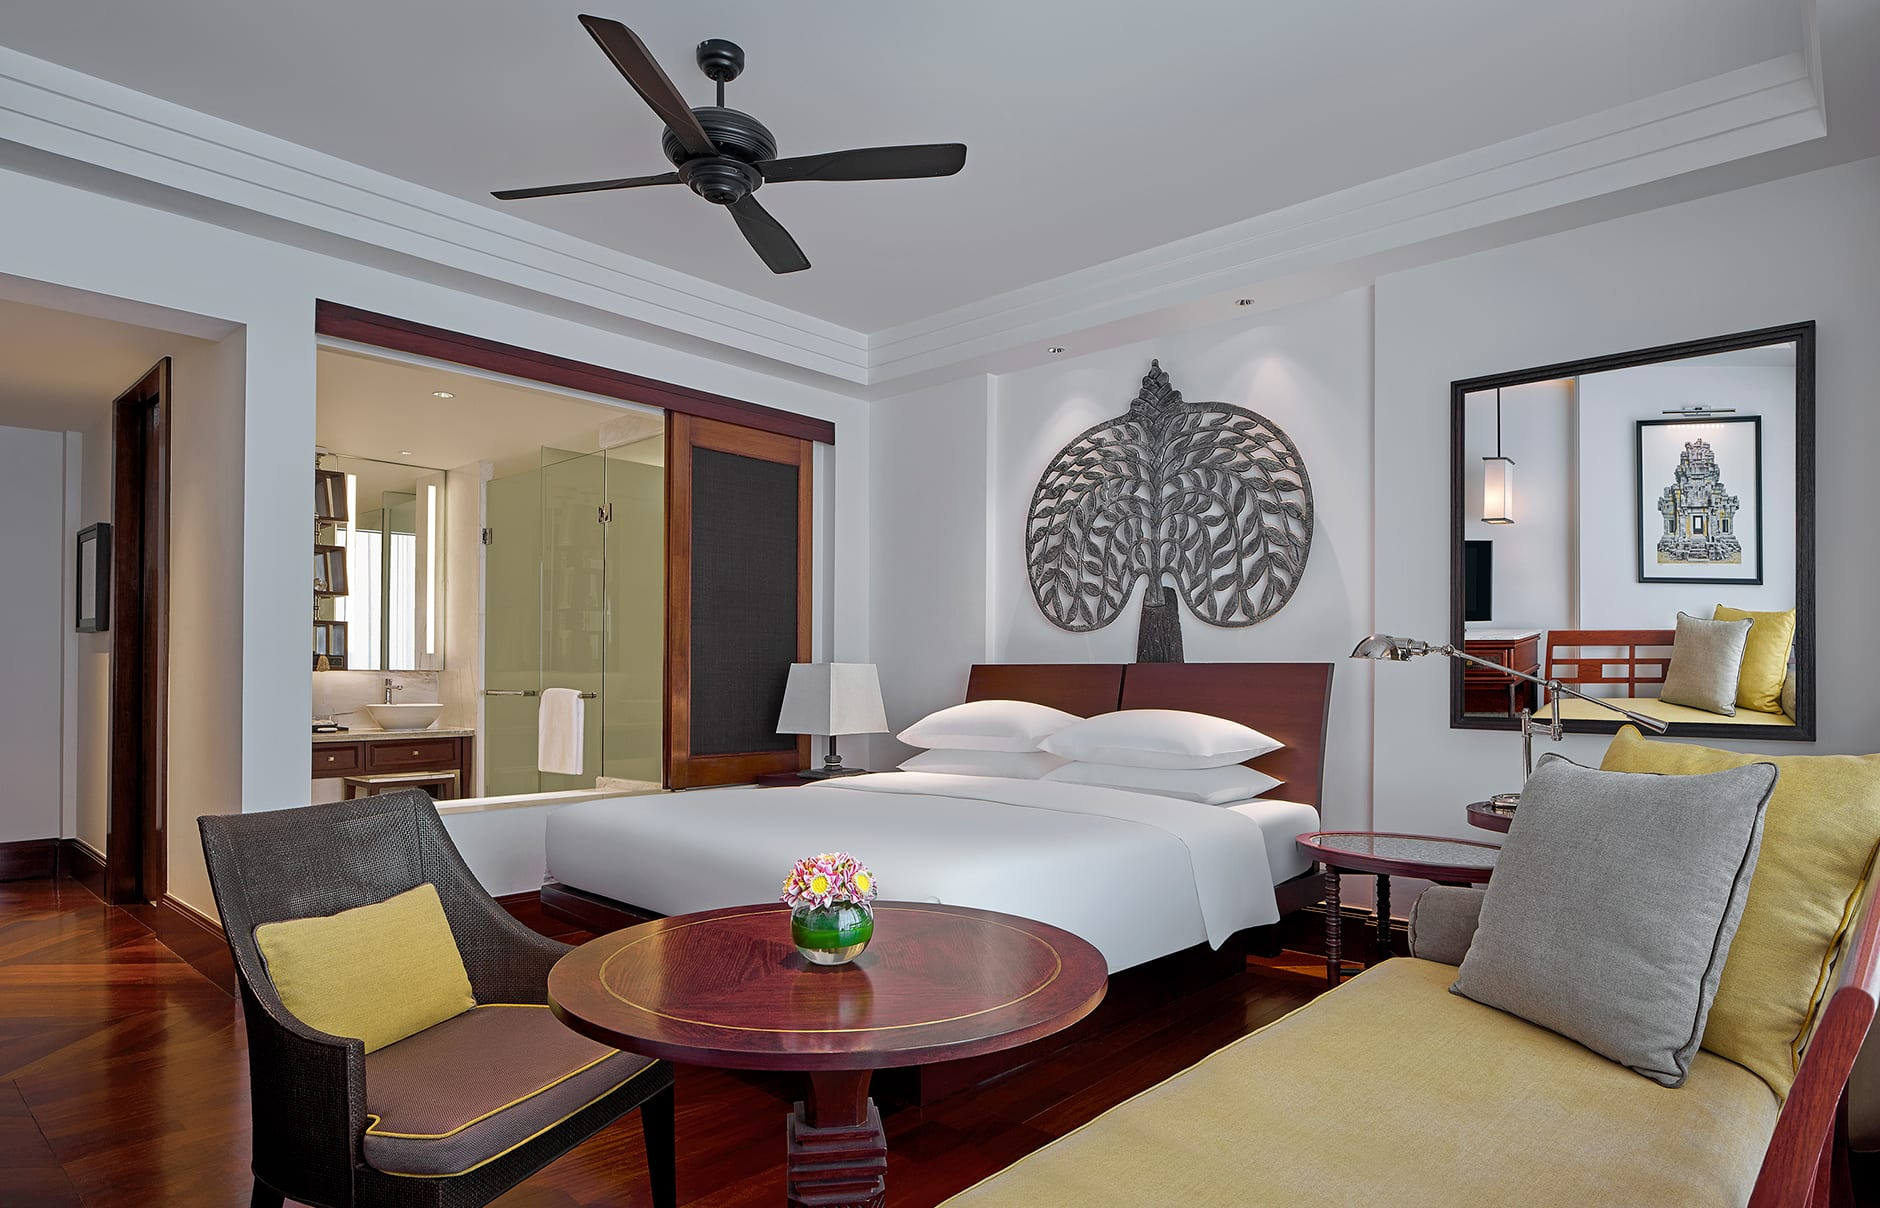 Park Hyatt Siem Reap, Cambodia. Hotel Review by TravelPlusStyle. Photo © Hyatt Corporation